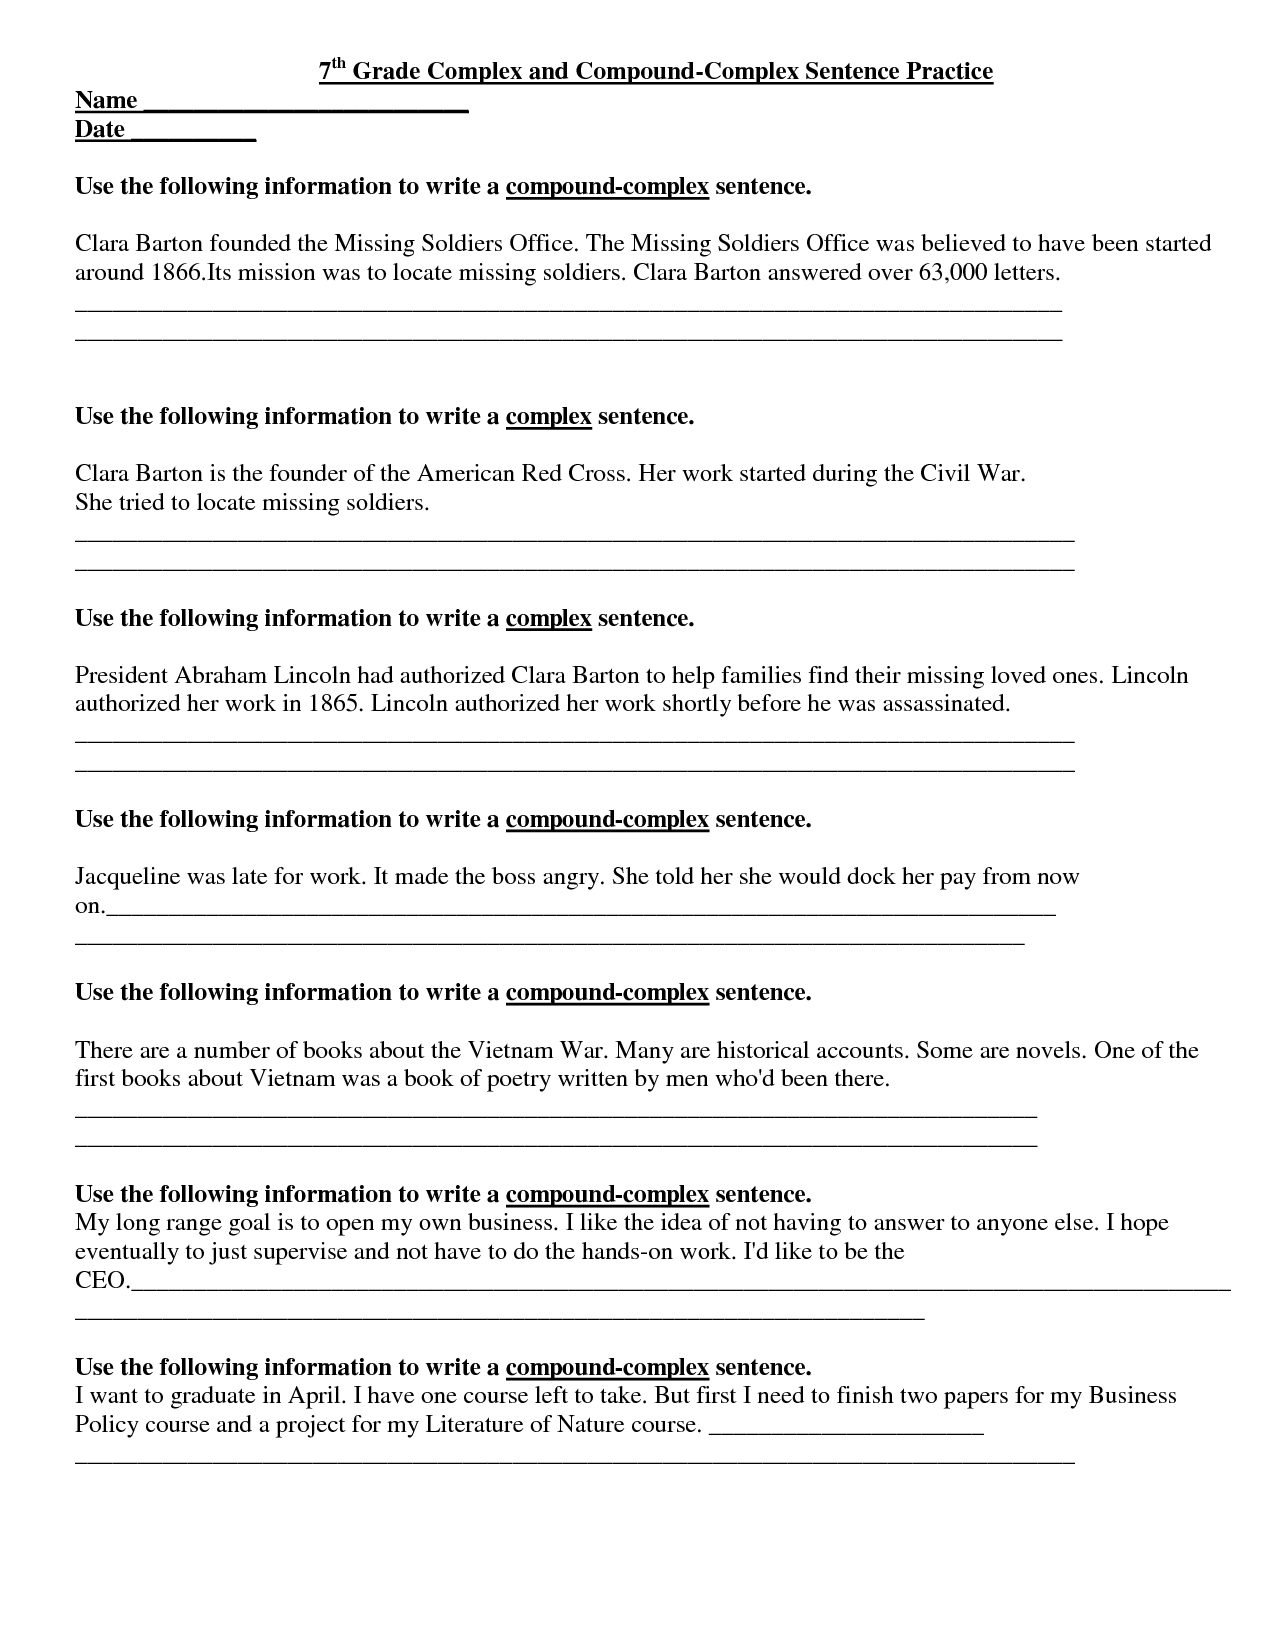 Uncategorized Science Worksheets For 4th Grade free 4th grade reading comprehension passages and questions 36 weeks printable pdf worksheets to